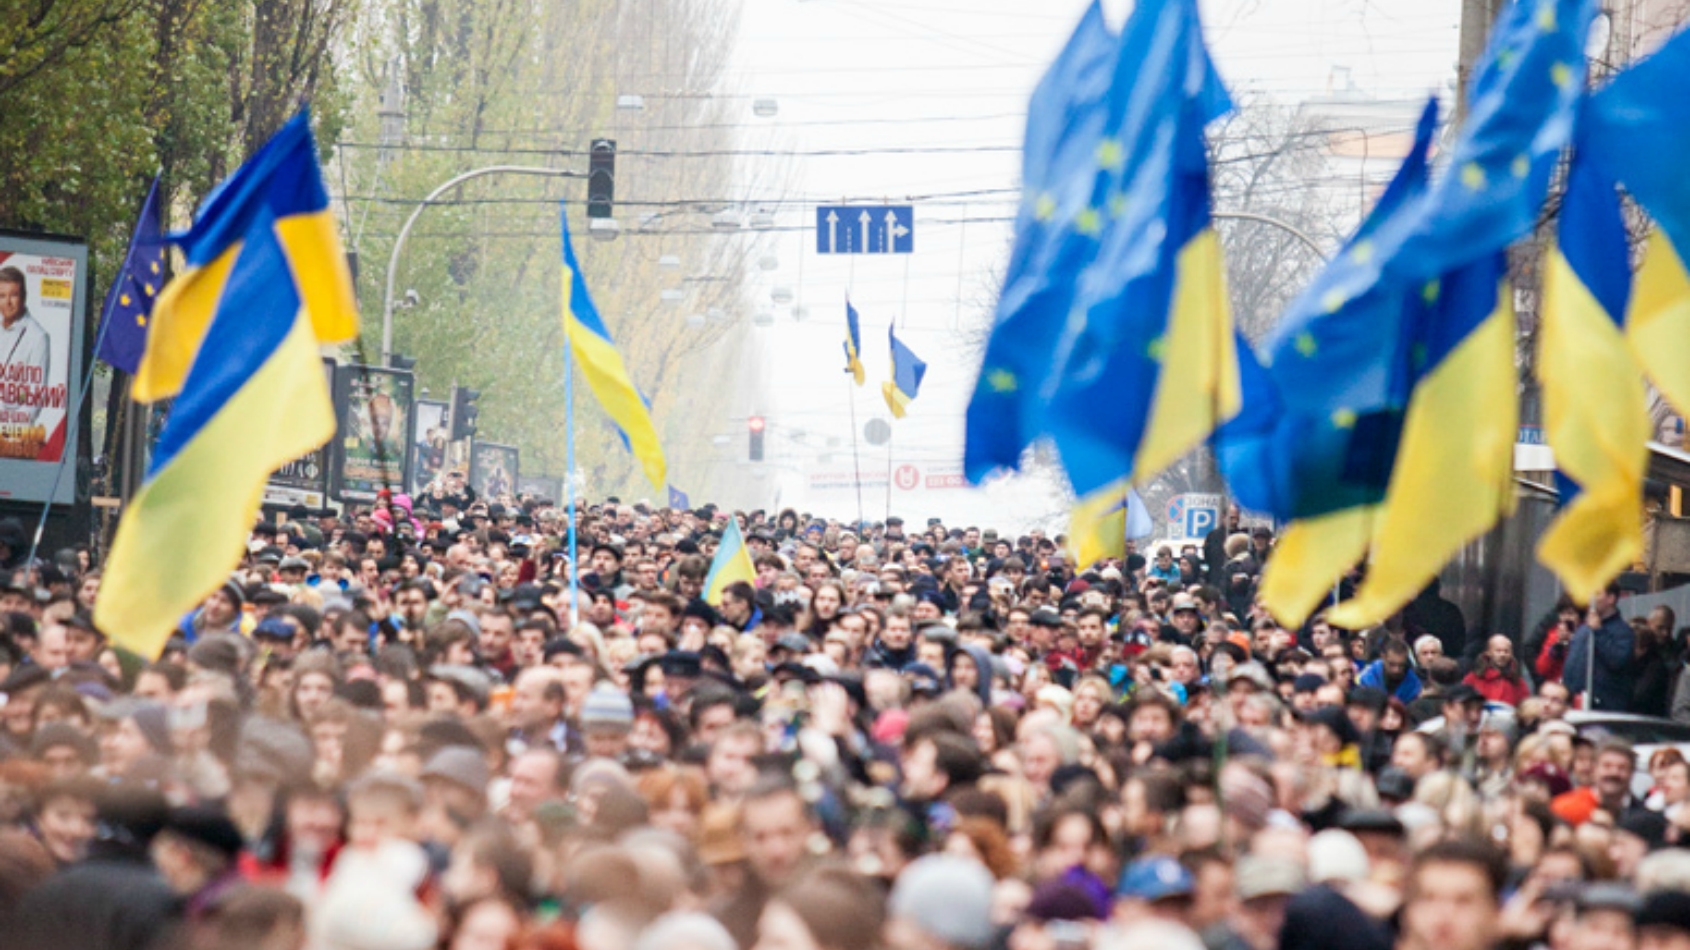 Euromaidan_Kyiv_1-12-13_by_Gnatoush_001